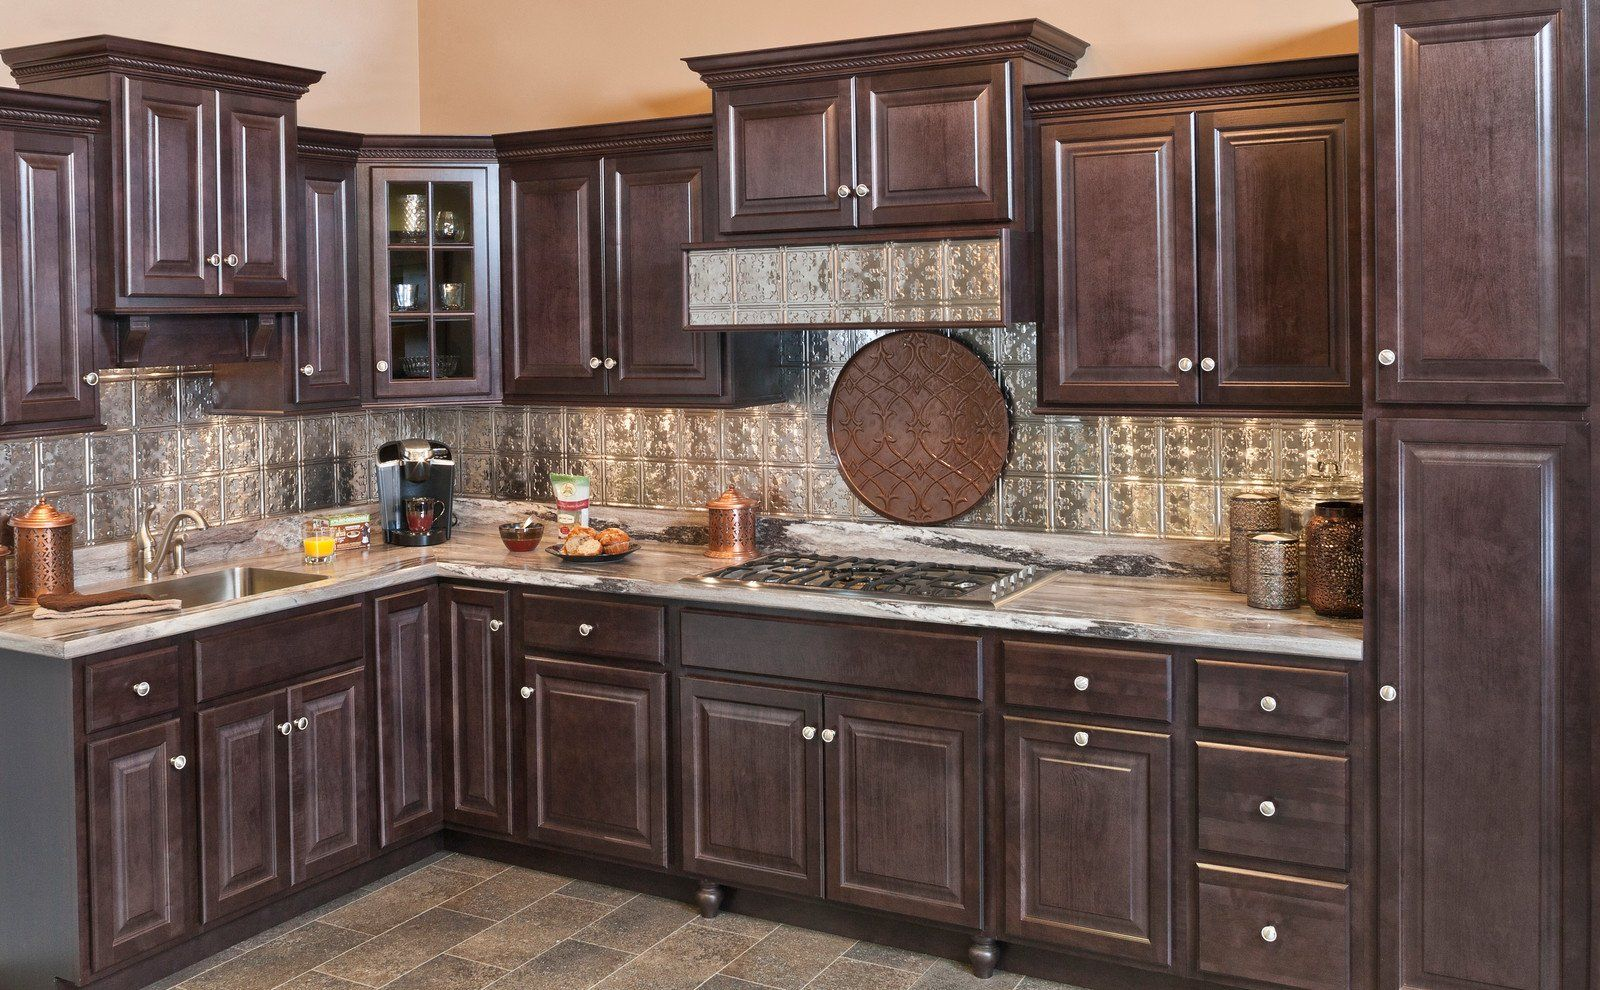 Wolf Classic Insight Saginaw Dark Sable Cabinets From Aaadistributor Dark Sable Stain Is The In 2020 Custom Kitchen Cabinets Kitchen Cabinets Quality Kitchen Cabinets